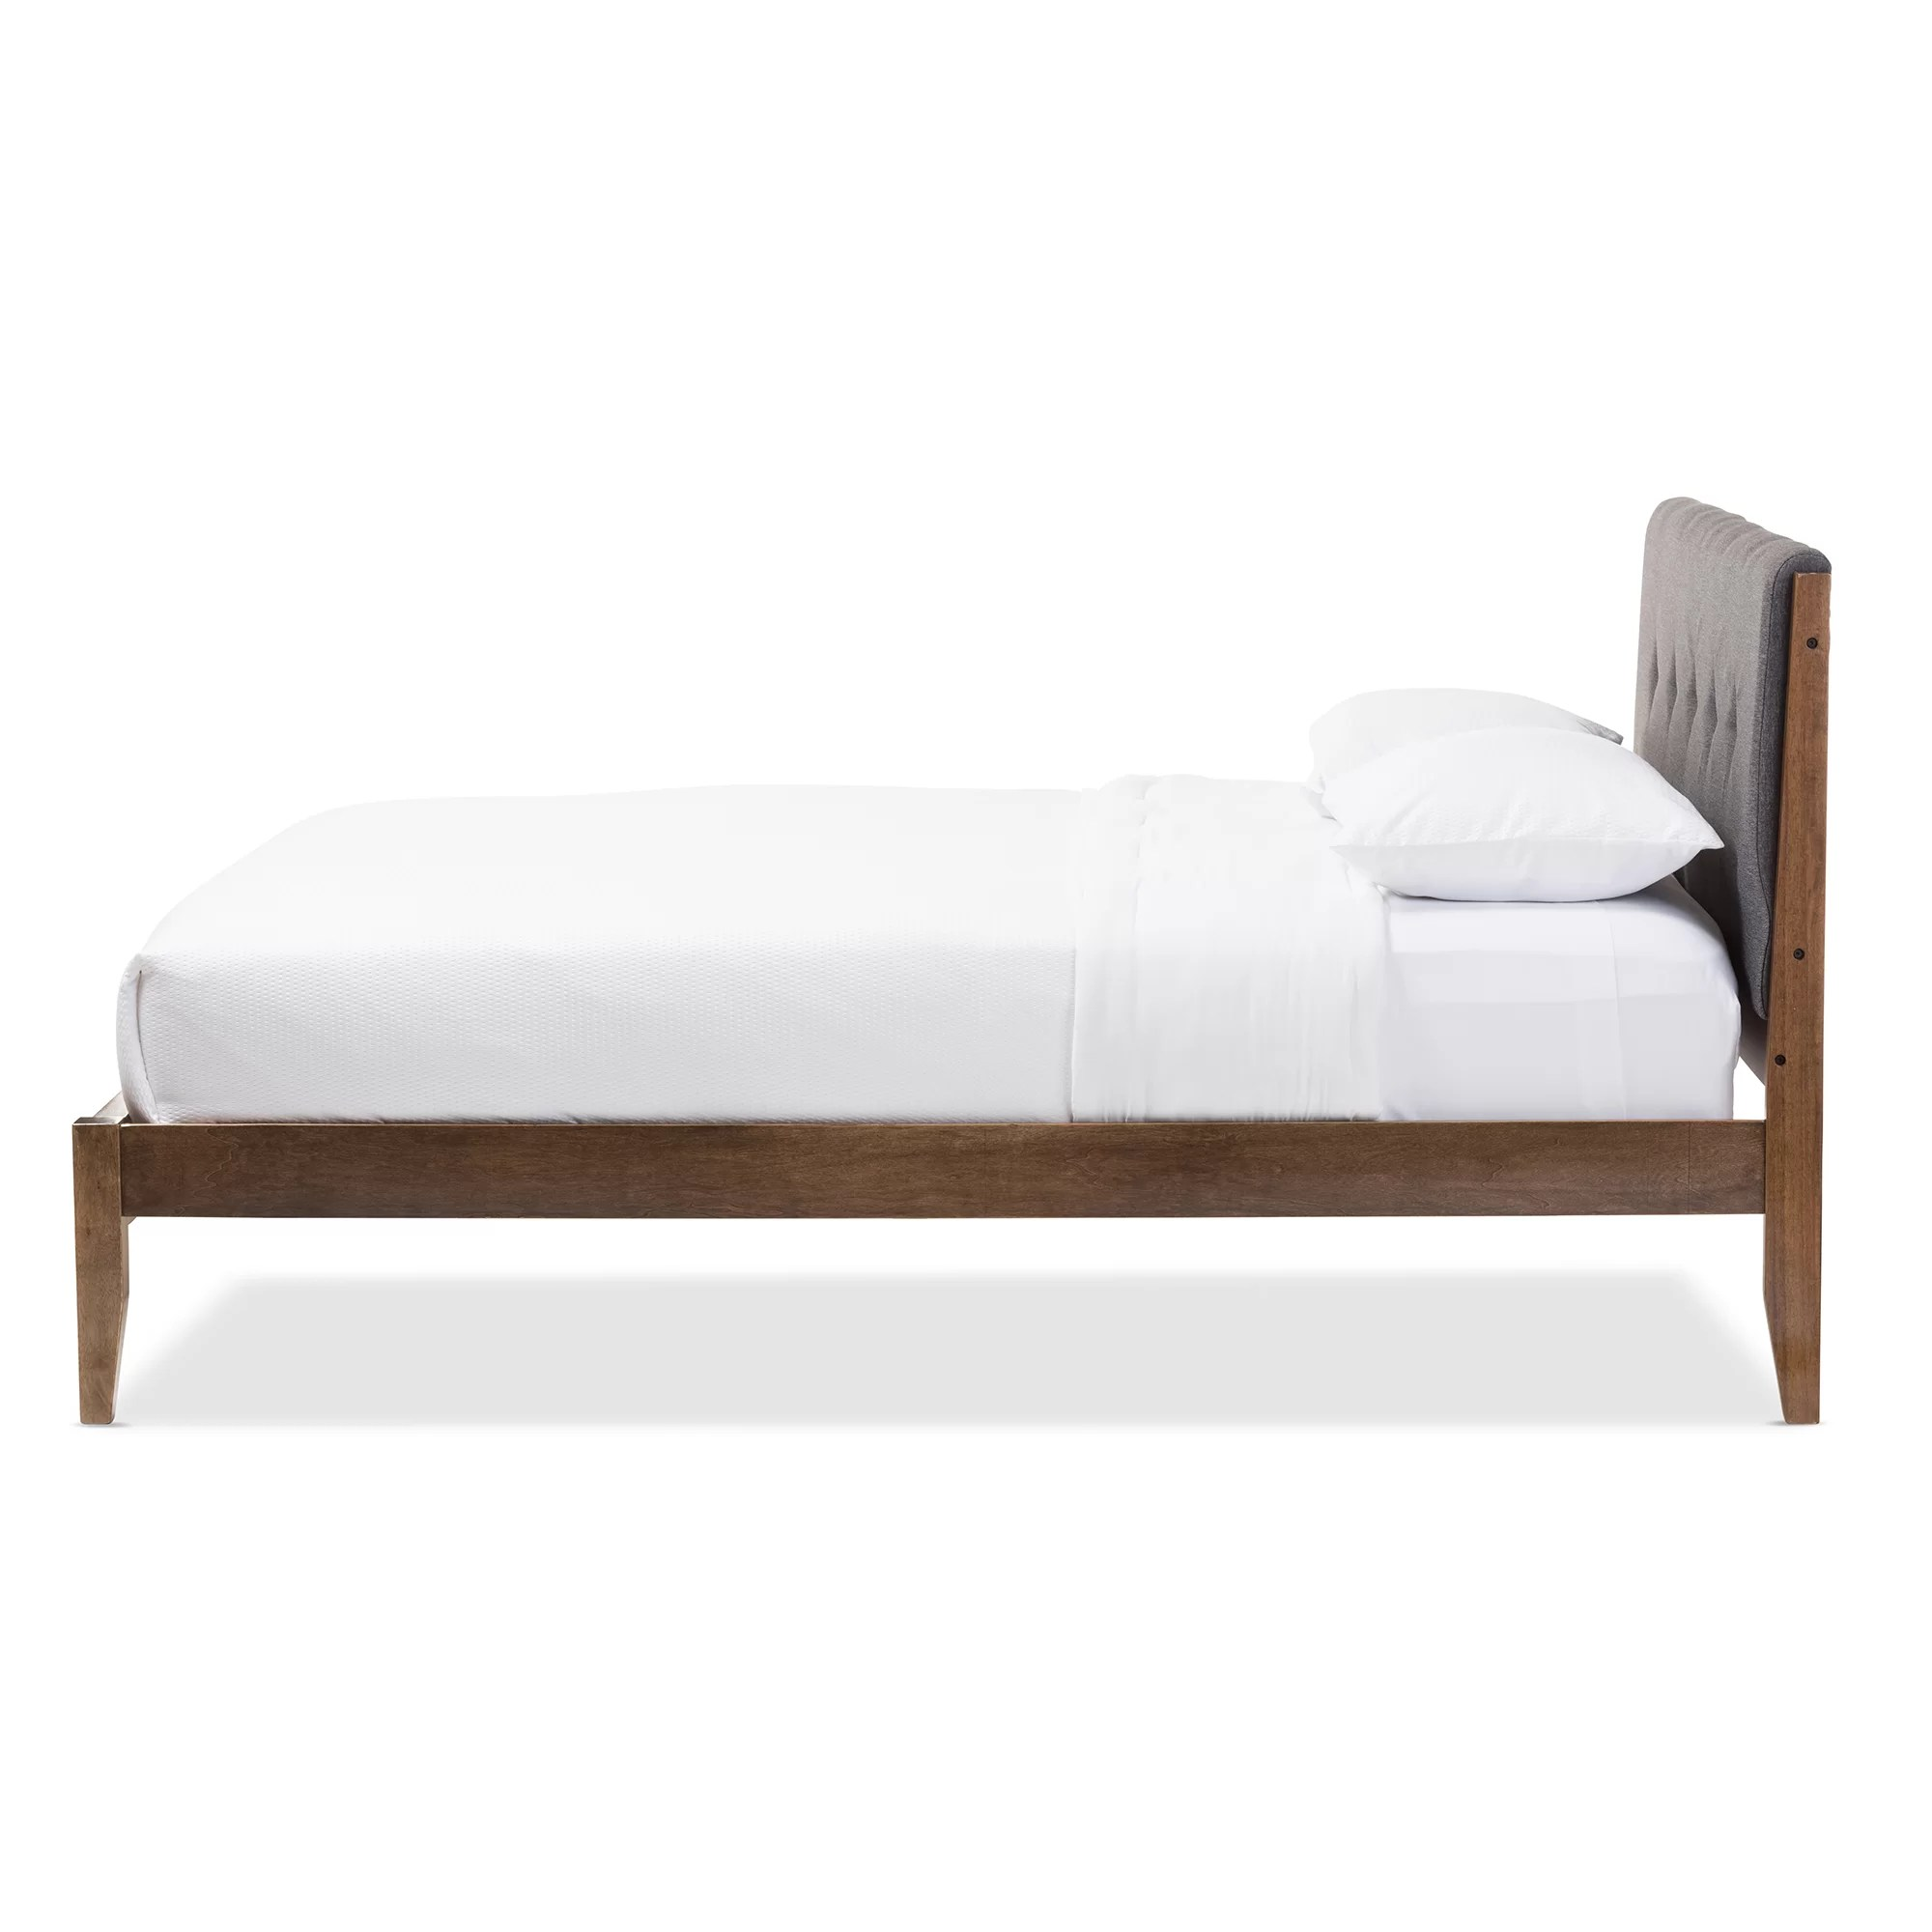 Brayden Studio Smotherman King Upholstered Platform Bed